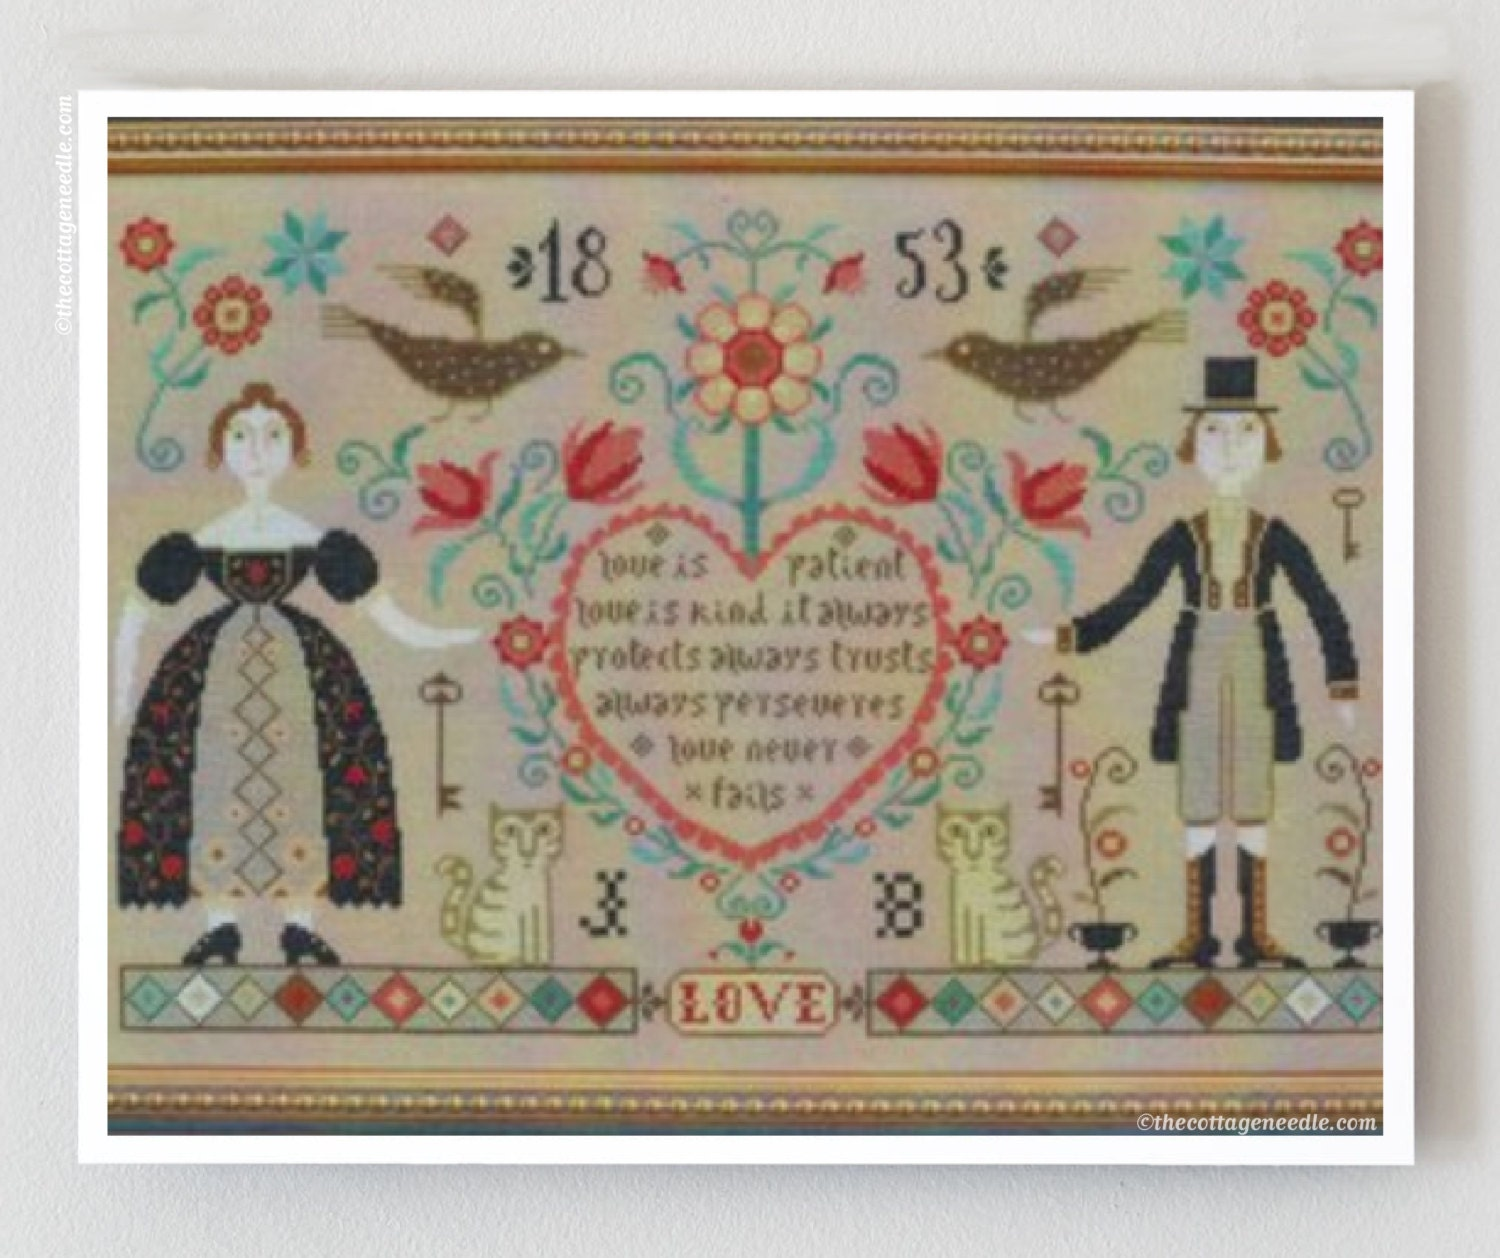 Cross stitch patterns love never fails by thecottageneedle